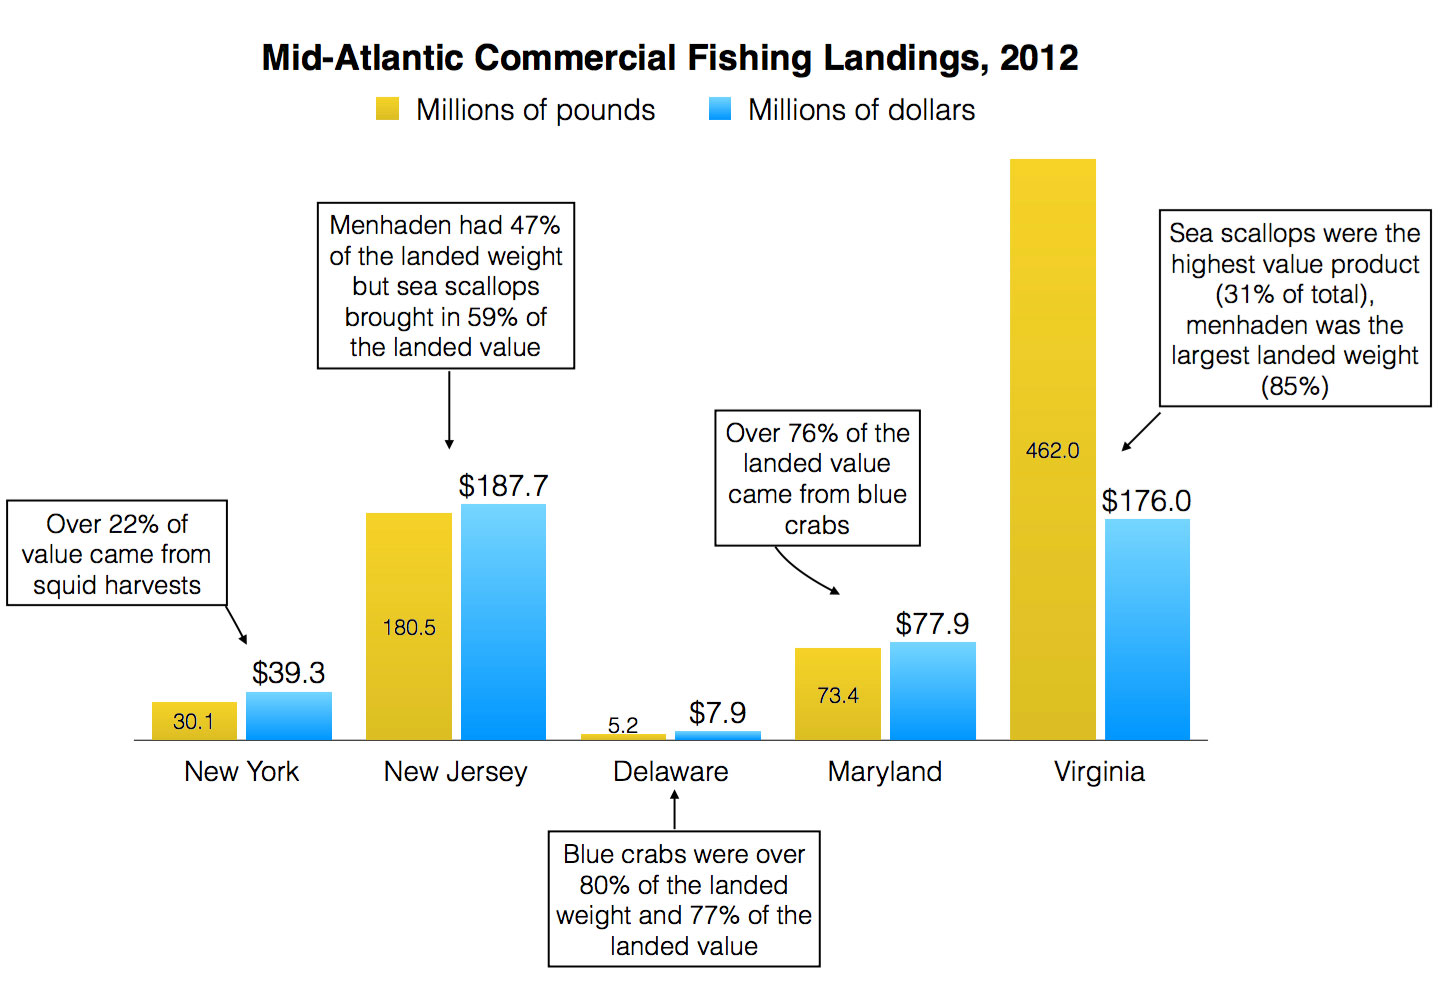 Mid-Atlantic Commercial Fishing Landings, 2012